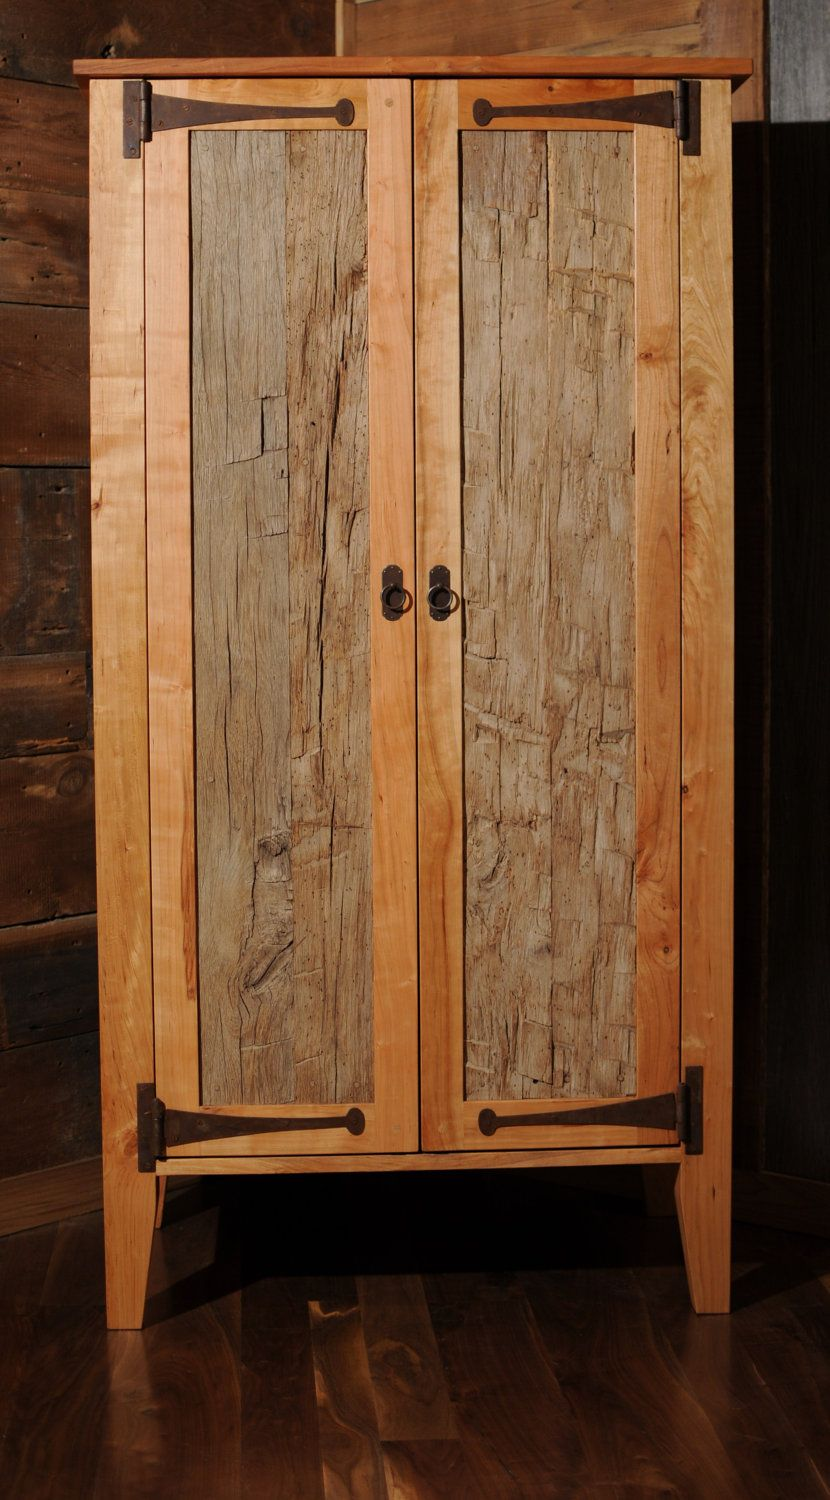 Your home improvements refference solid wood wardrobe closet - Reclaimed Wood Armoire Wardrobe Closet Etsy